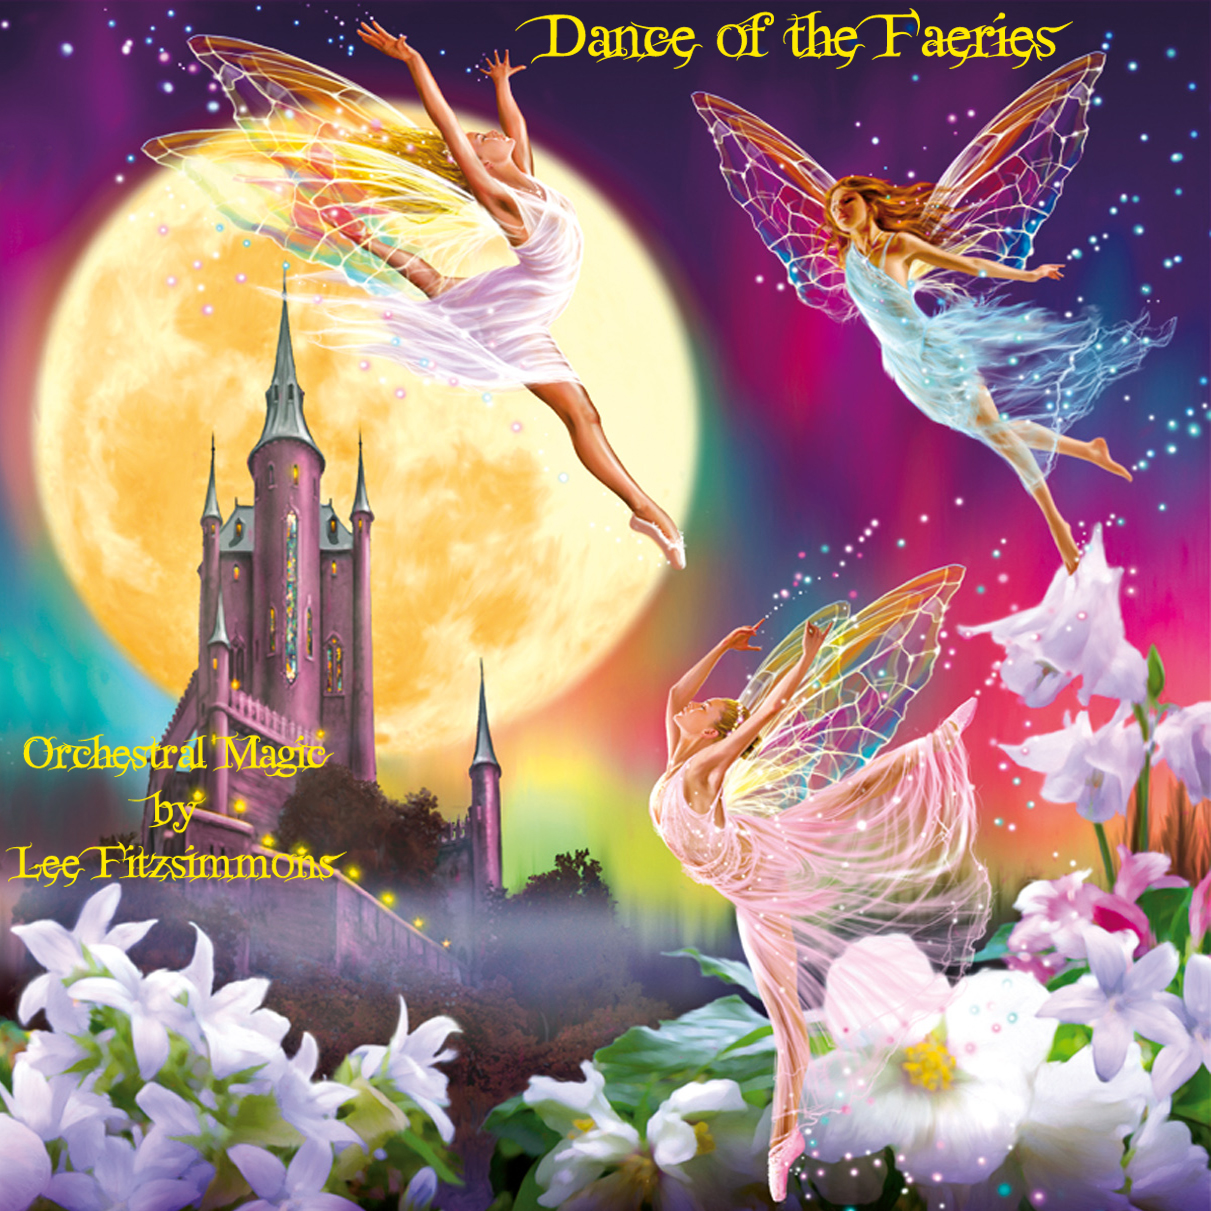 Dance of the Faeries